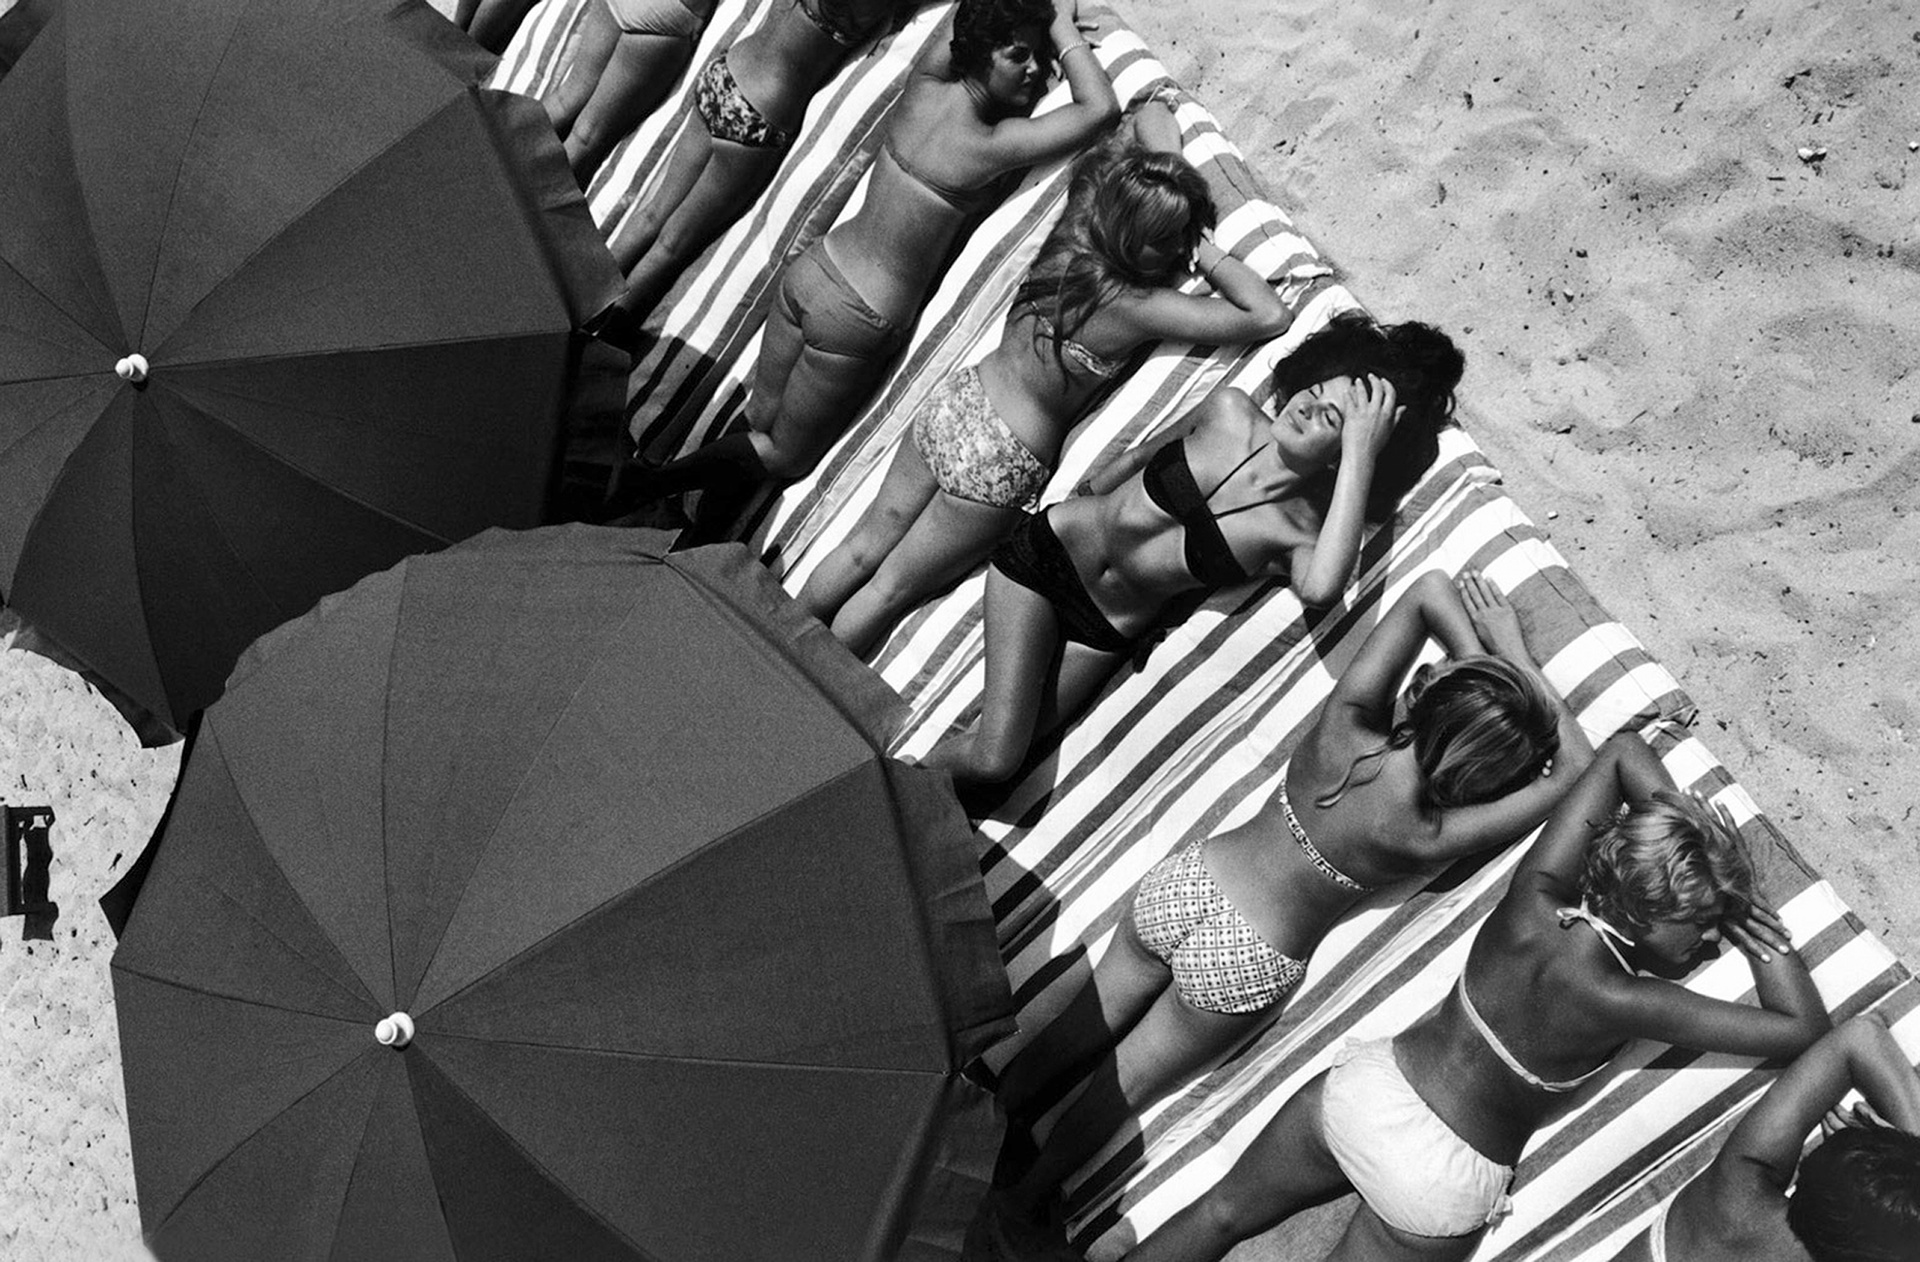 St. Tropez, France, 1959 by Elliott Erwitt